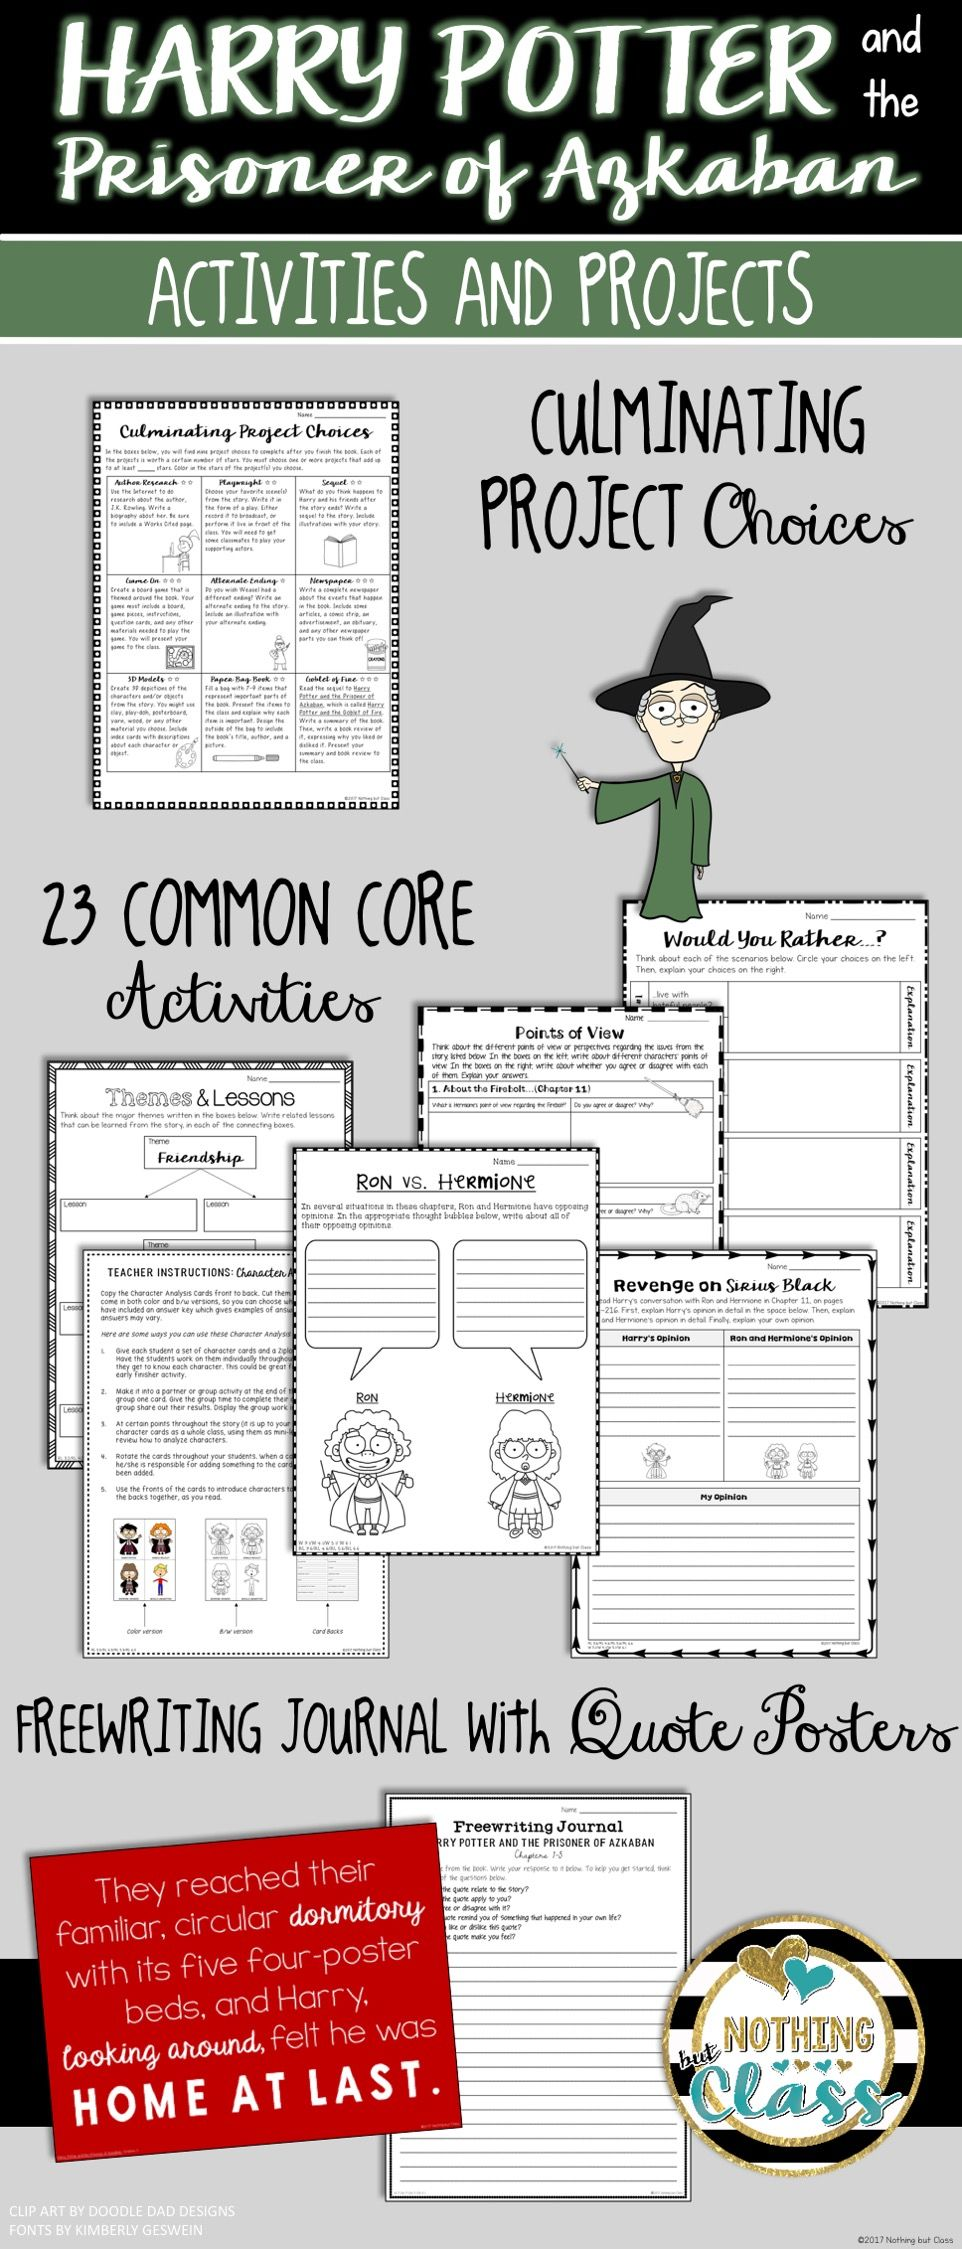 Thi Activity Packet For Harry Potter And The Prisoner Of Azkaban By J K Rowling Contain 72 Page O Common Core Activities Literary Analysi Essay